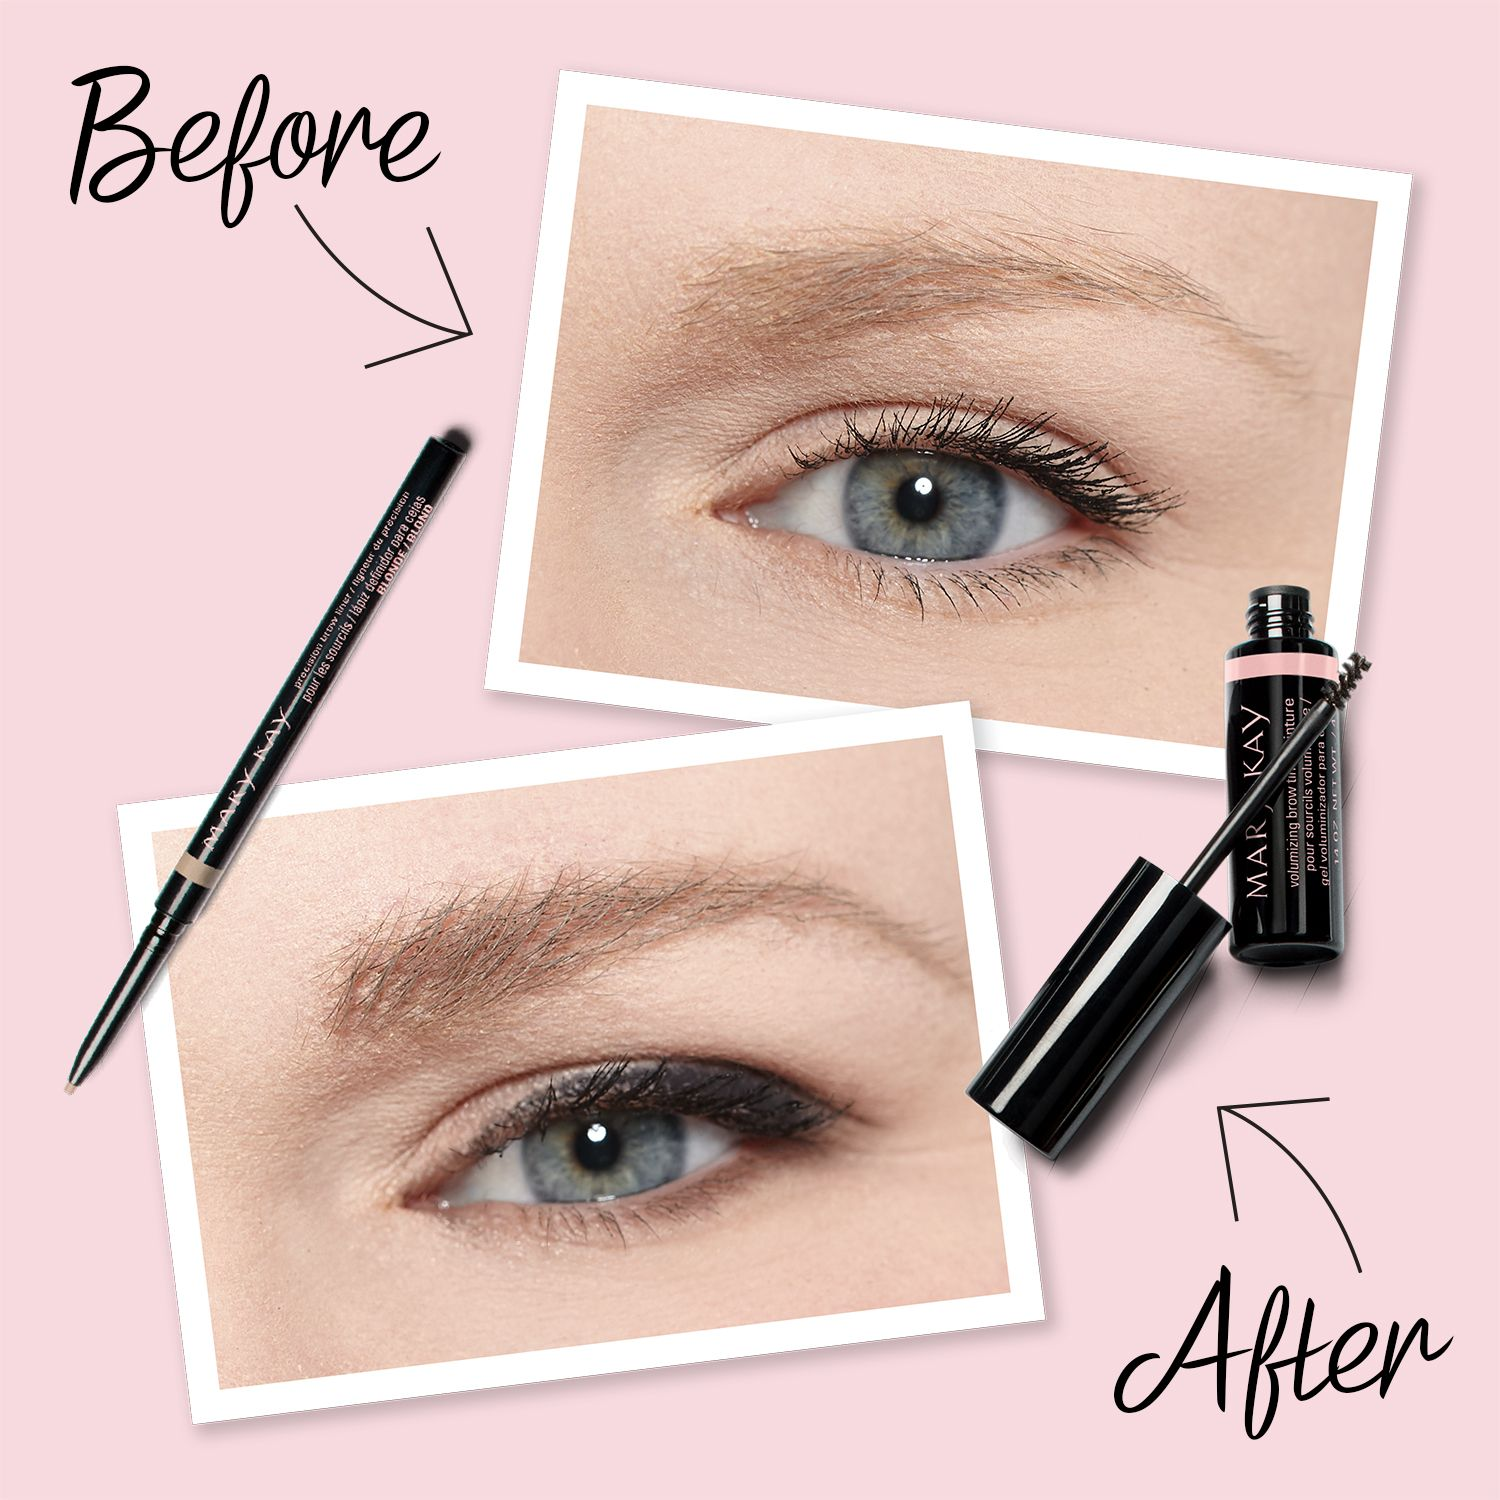 07a5464de58 Mary Kay® Brow Precision Liner and Volumizing Brow Tint - NEW FALL 2018  PRODUCTS! Who else is excited?! www.marykay.com/sstojanovski 714.328.0045